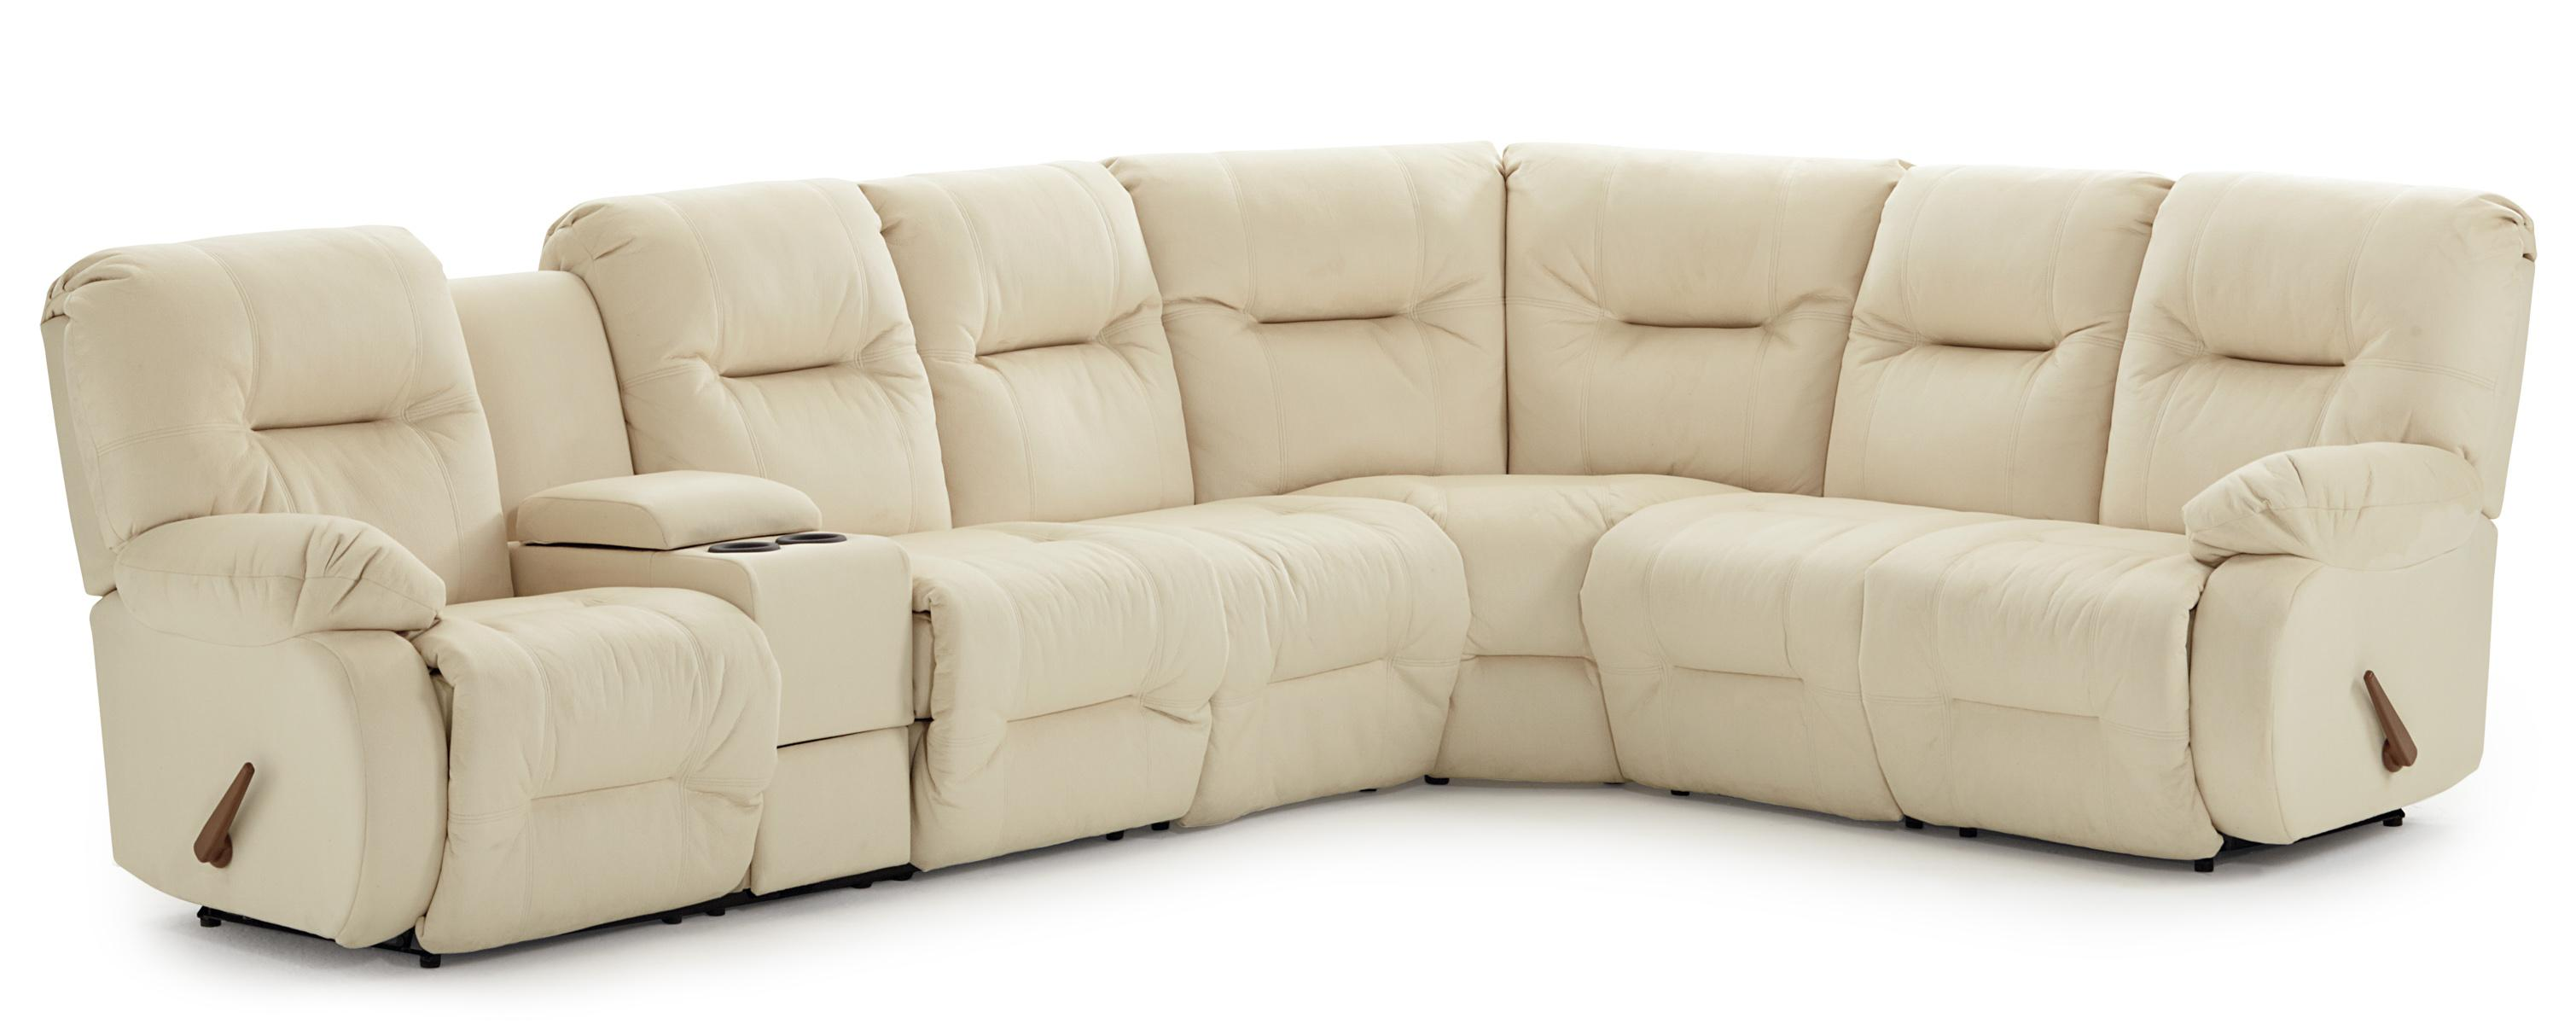 Casual Power Reclining Sectional Sofa with Storage Console and Cupholders  sc 1 st  Wolf Furniture : best reclining sectional sofas - Sectionals, Sofas & Couches